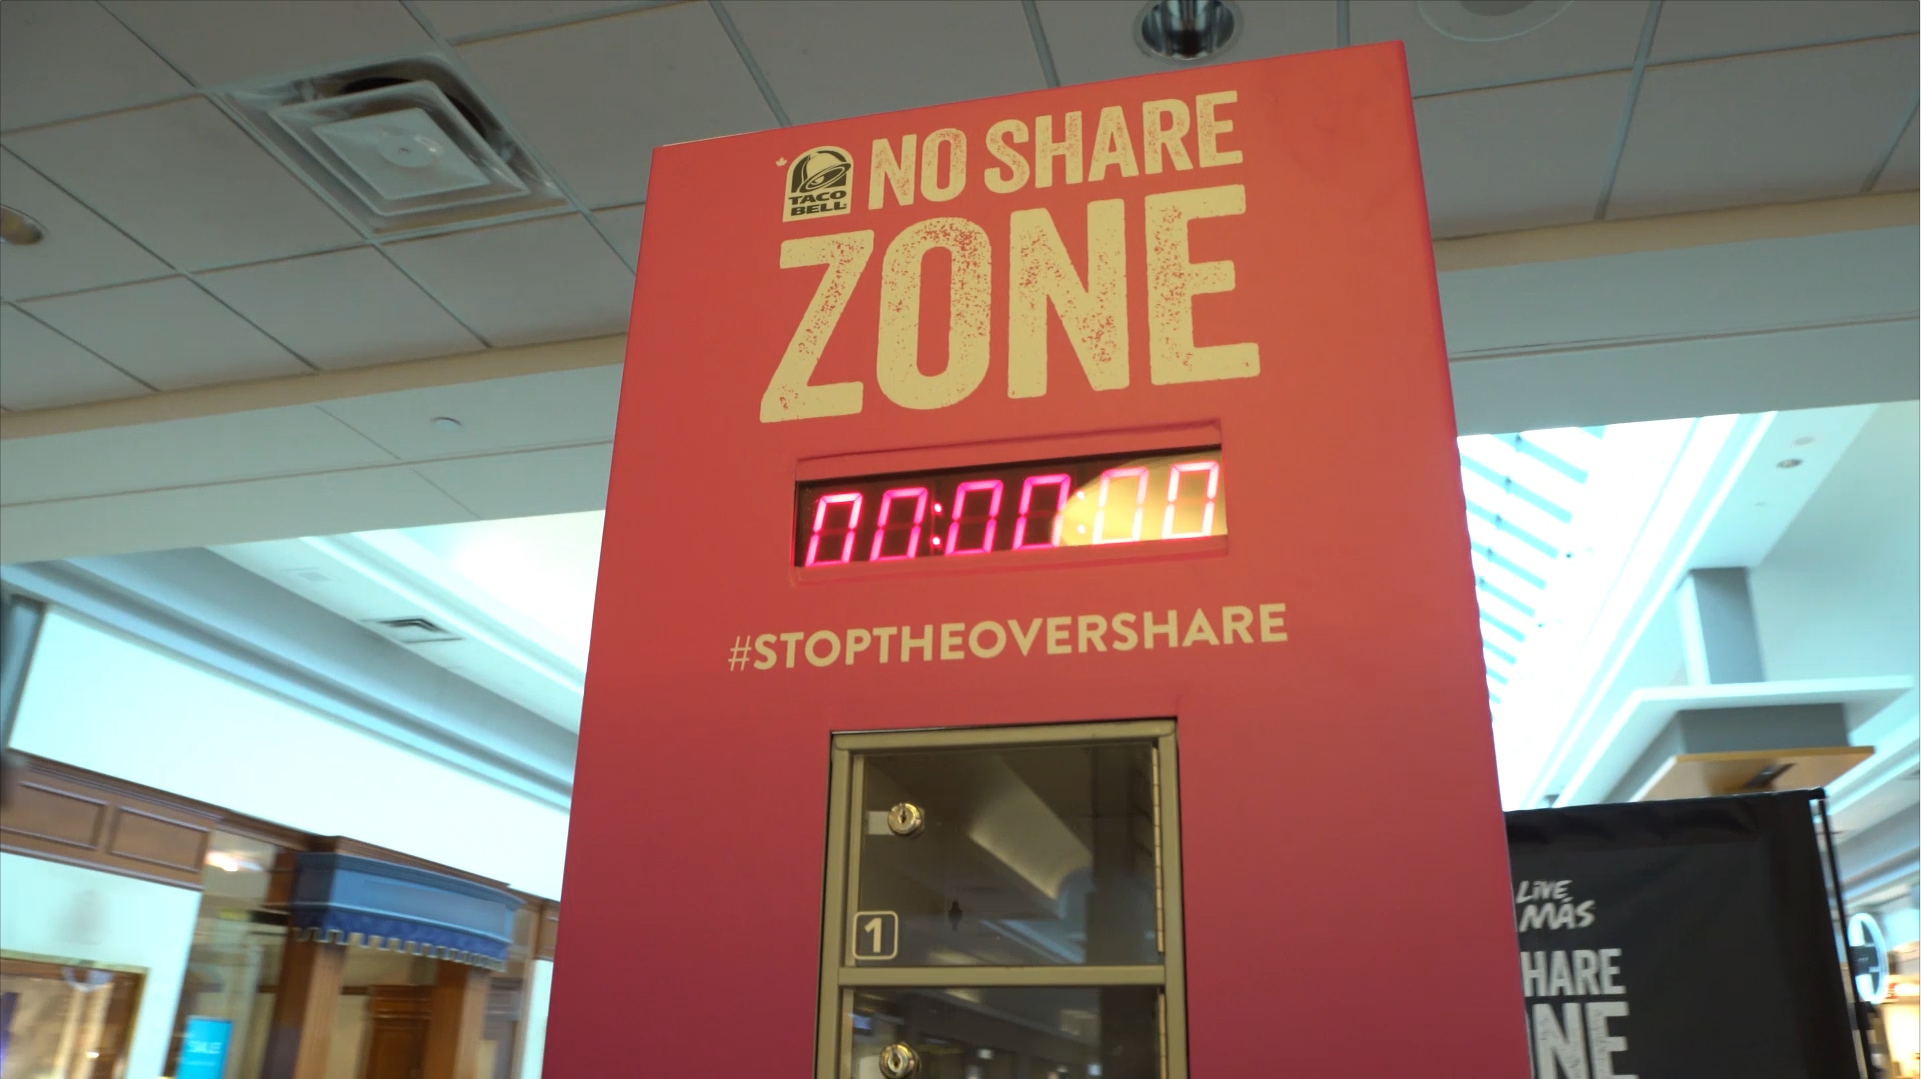 No Share Zone